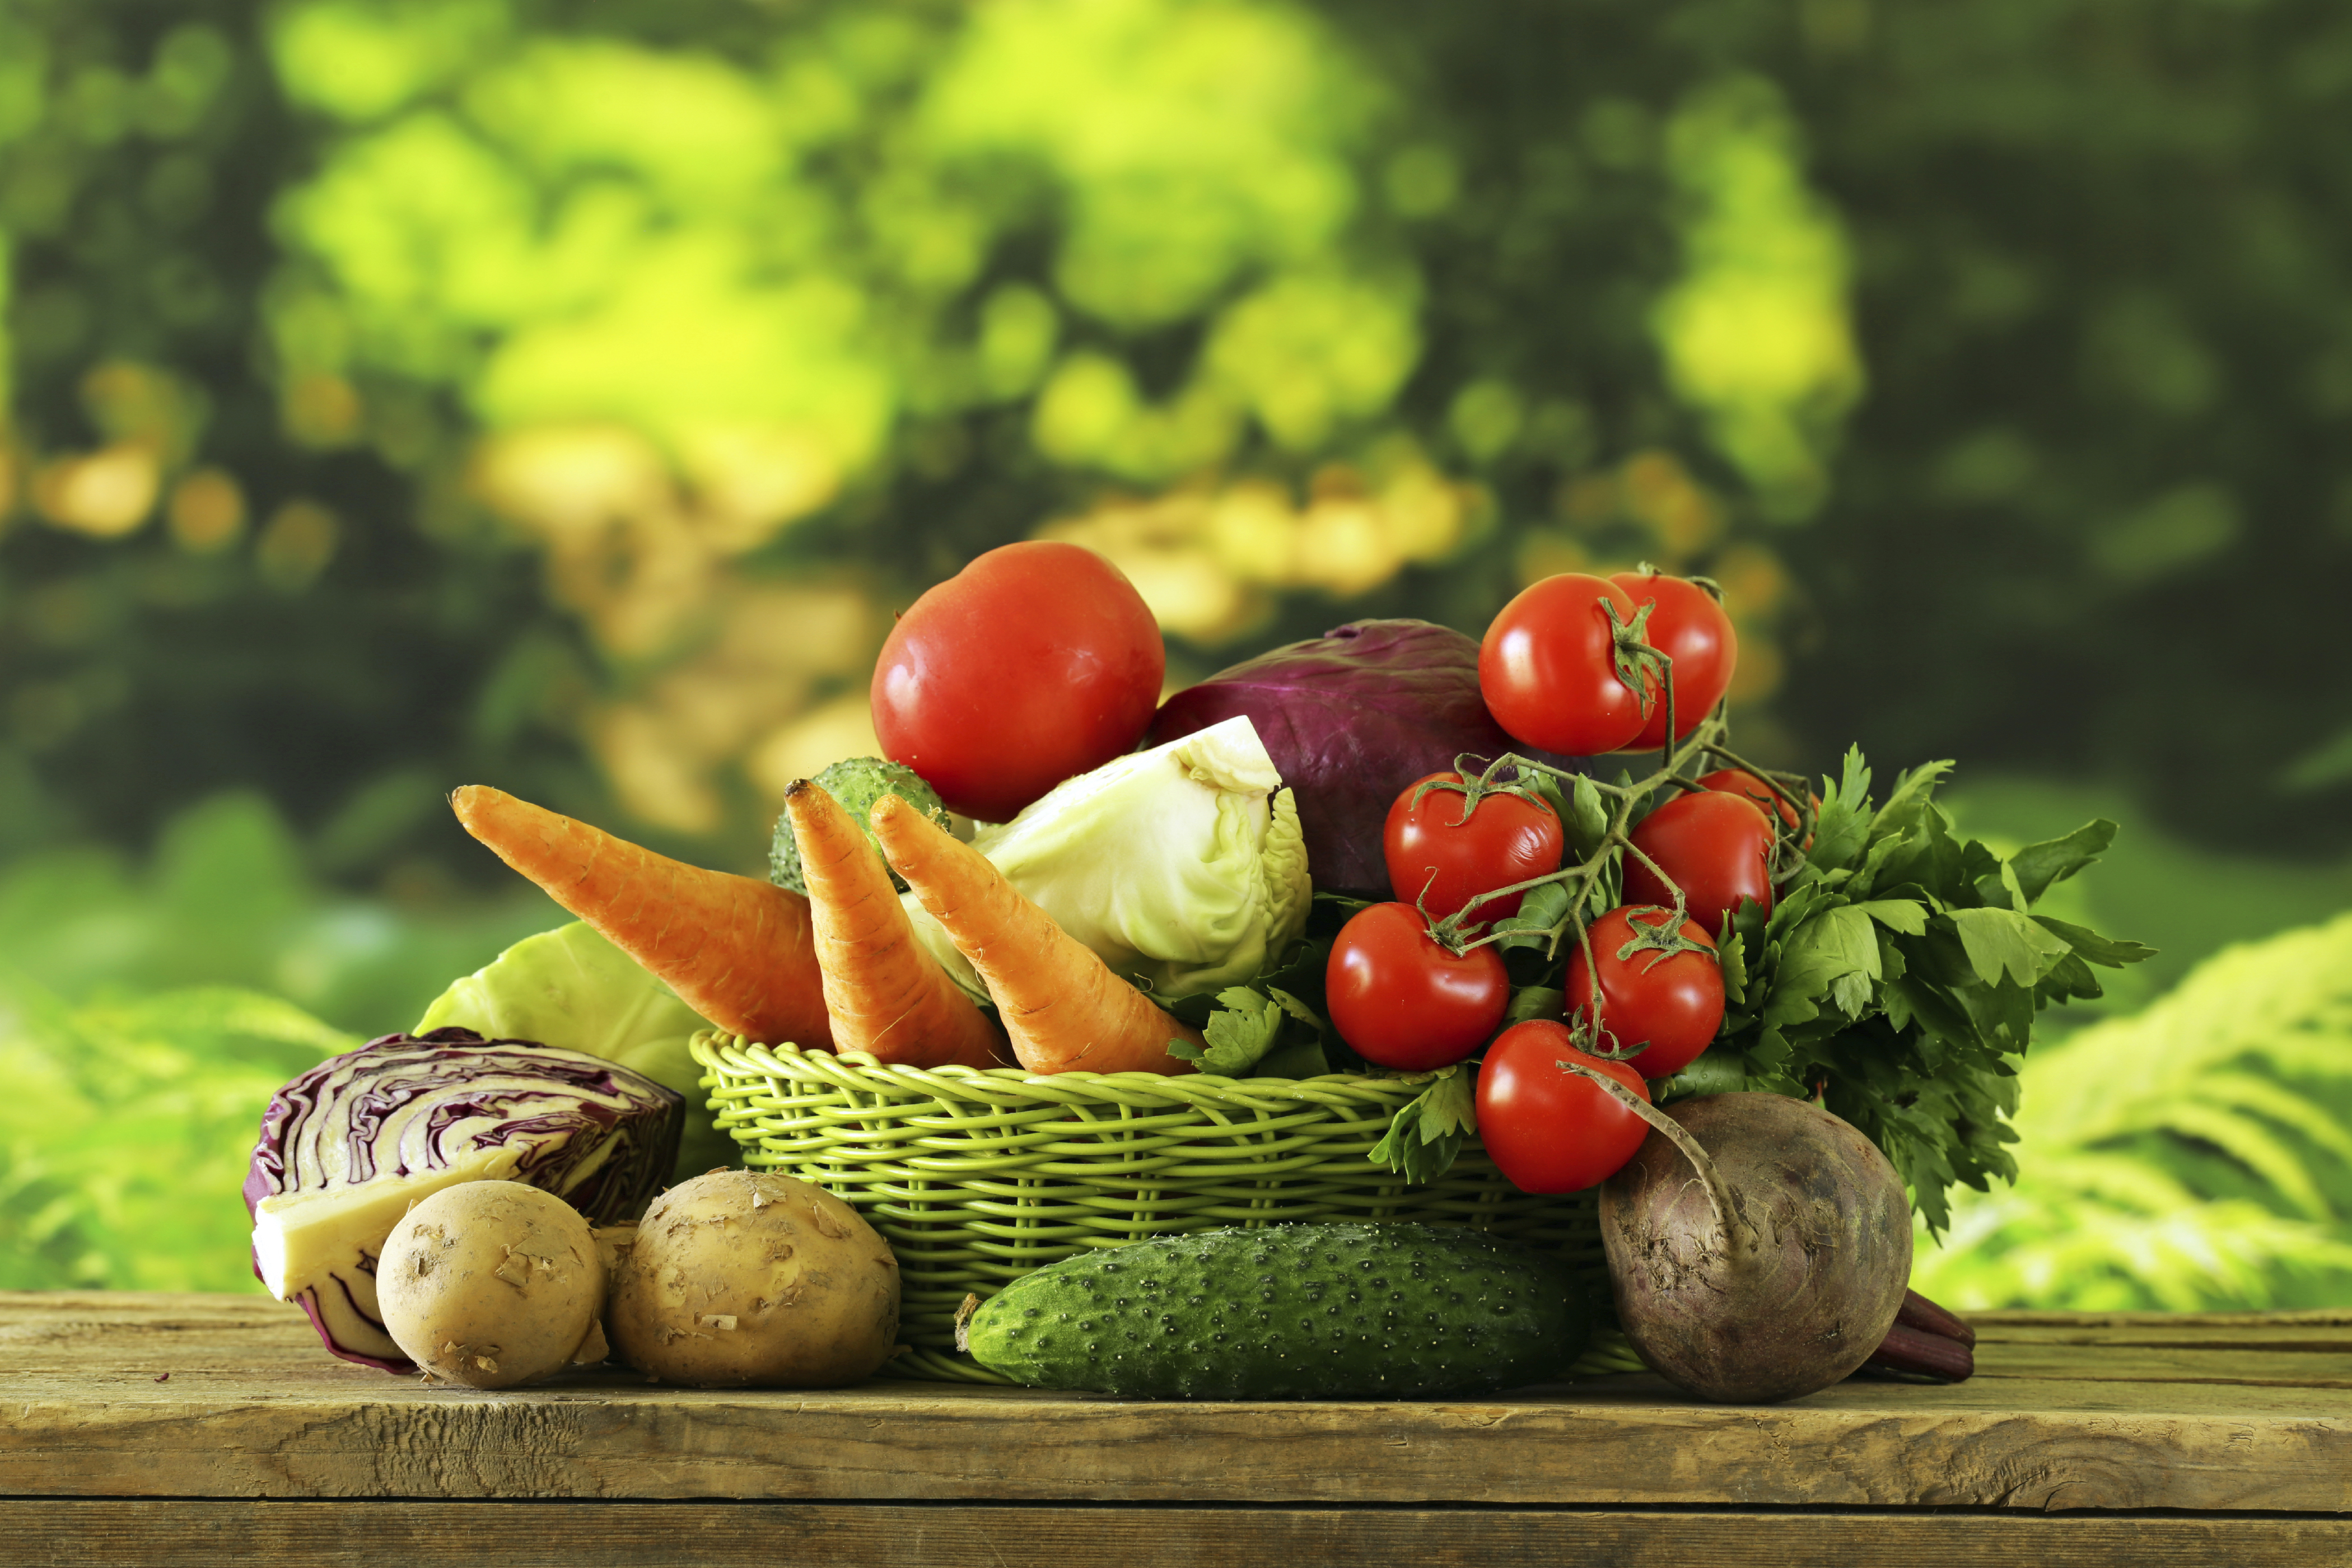 stock-photo-63105595-various-vegetables-carrots-potatoes-cabbage-tomatoes-in-basket